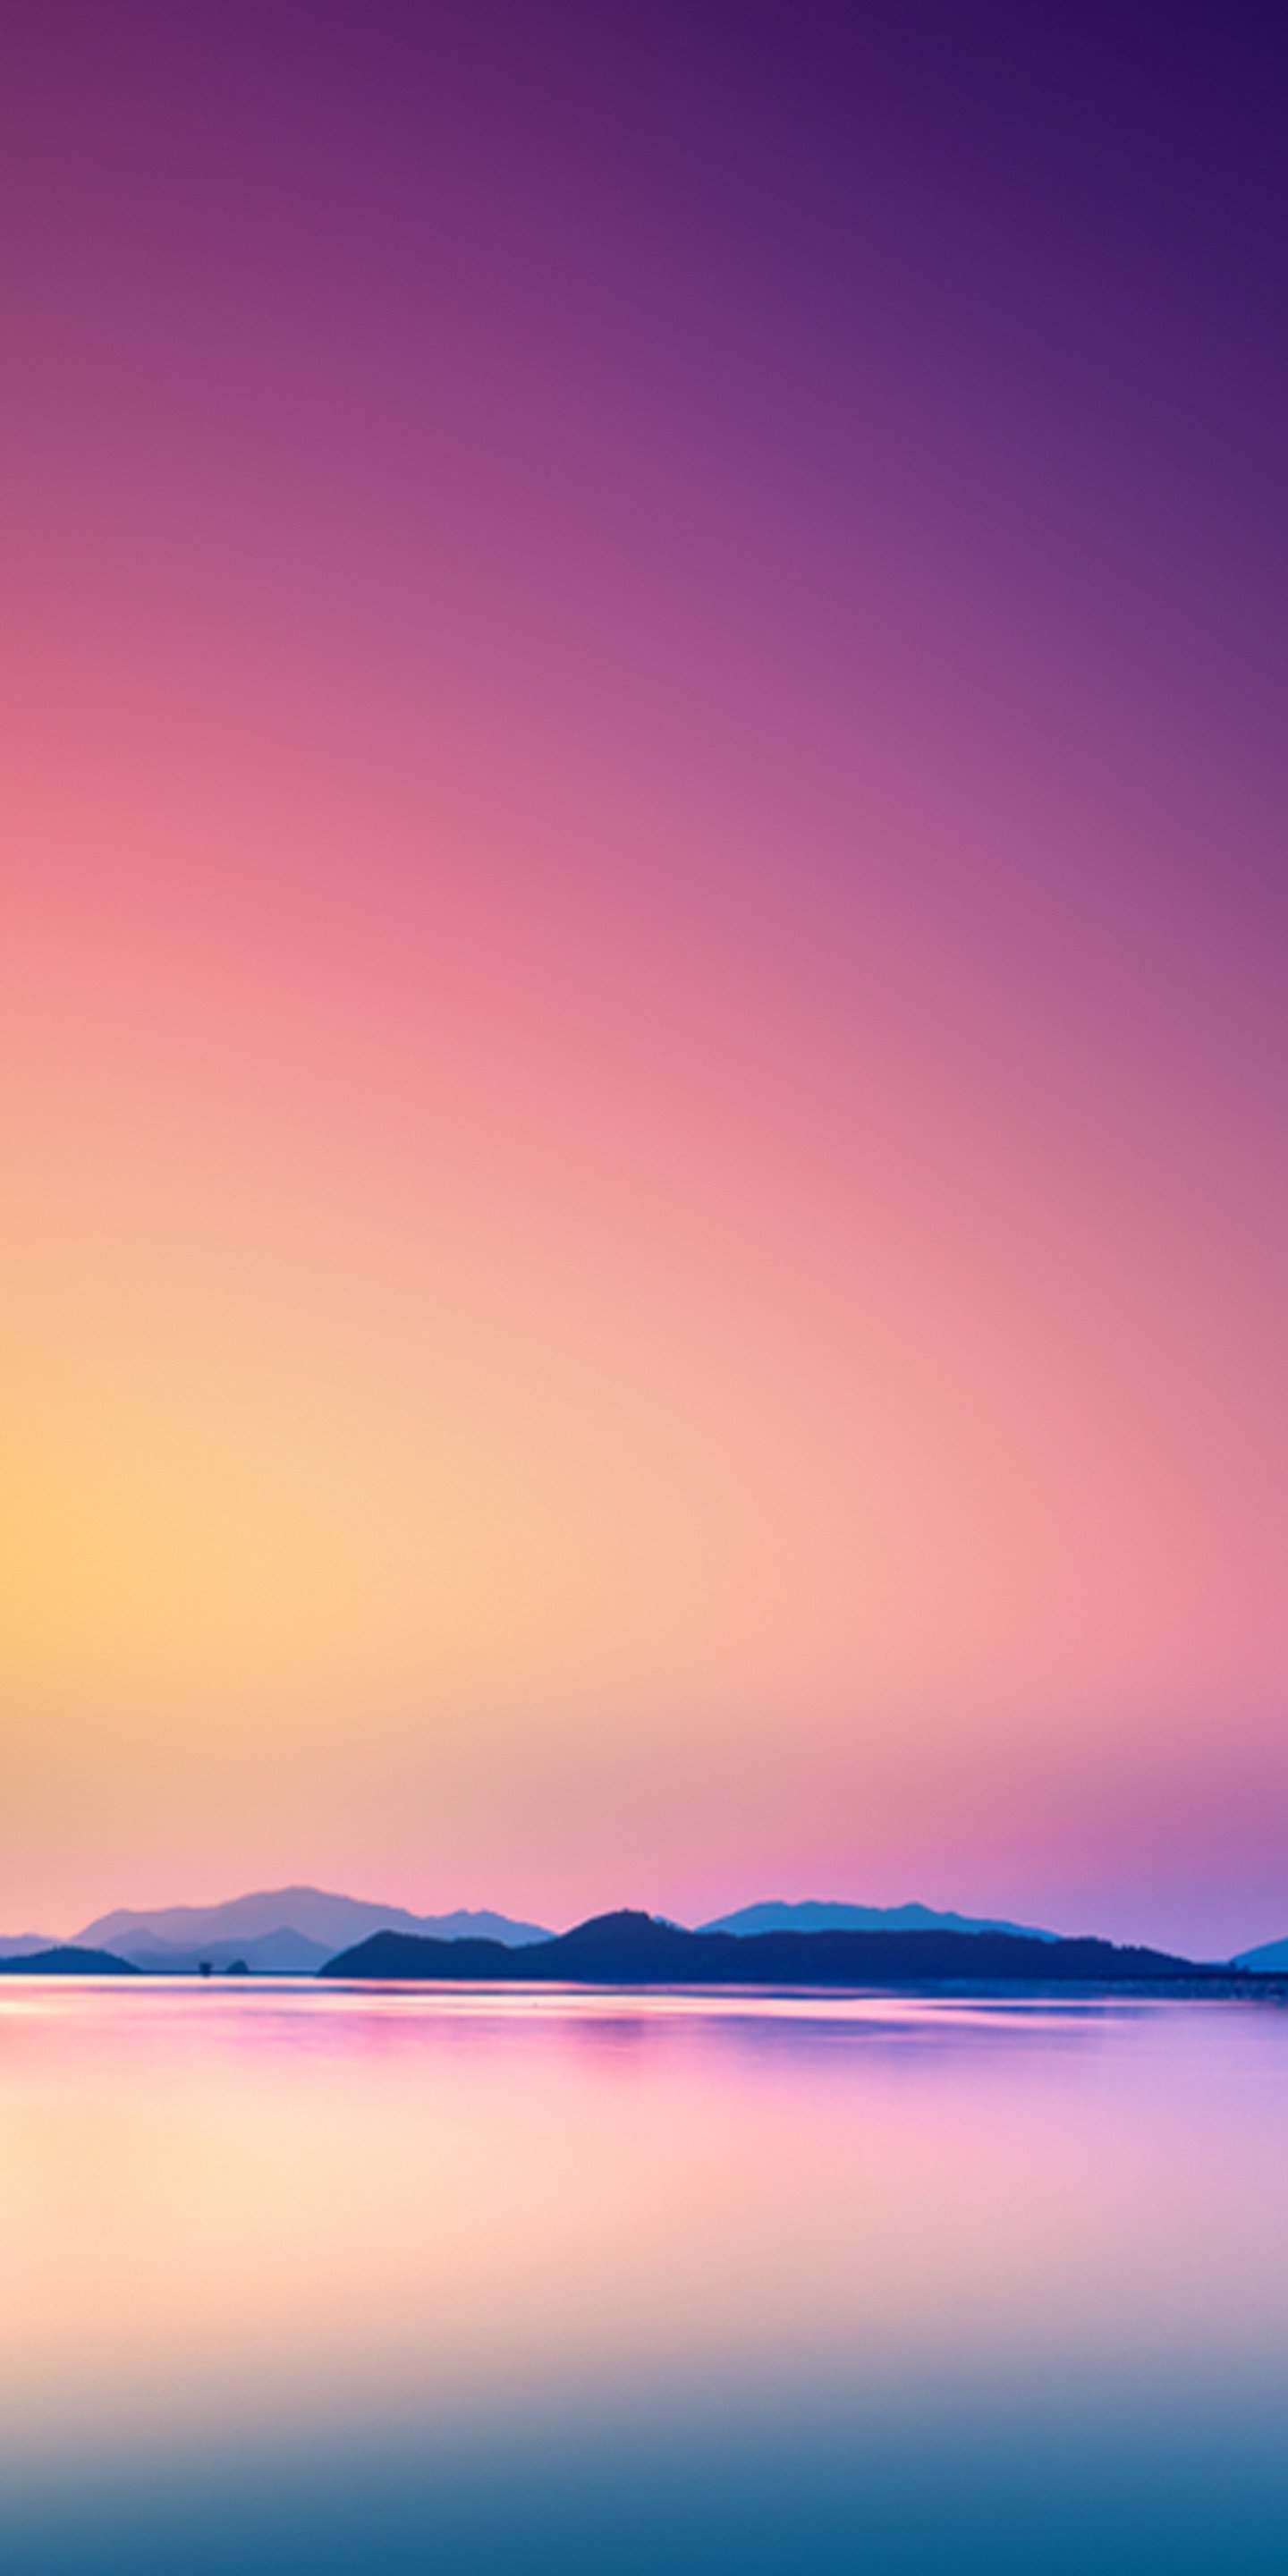 Iphone X Wallpaper Official Get A Taste Of The Lg V30 On Your Device With These